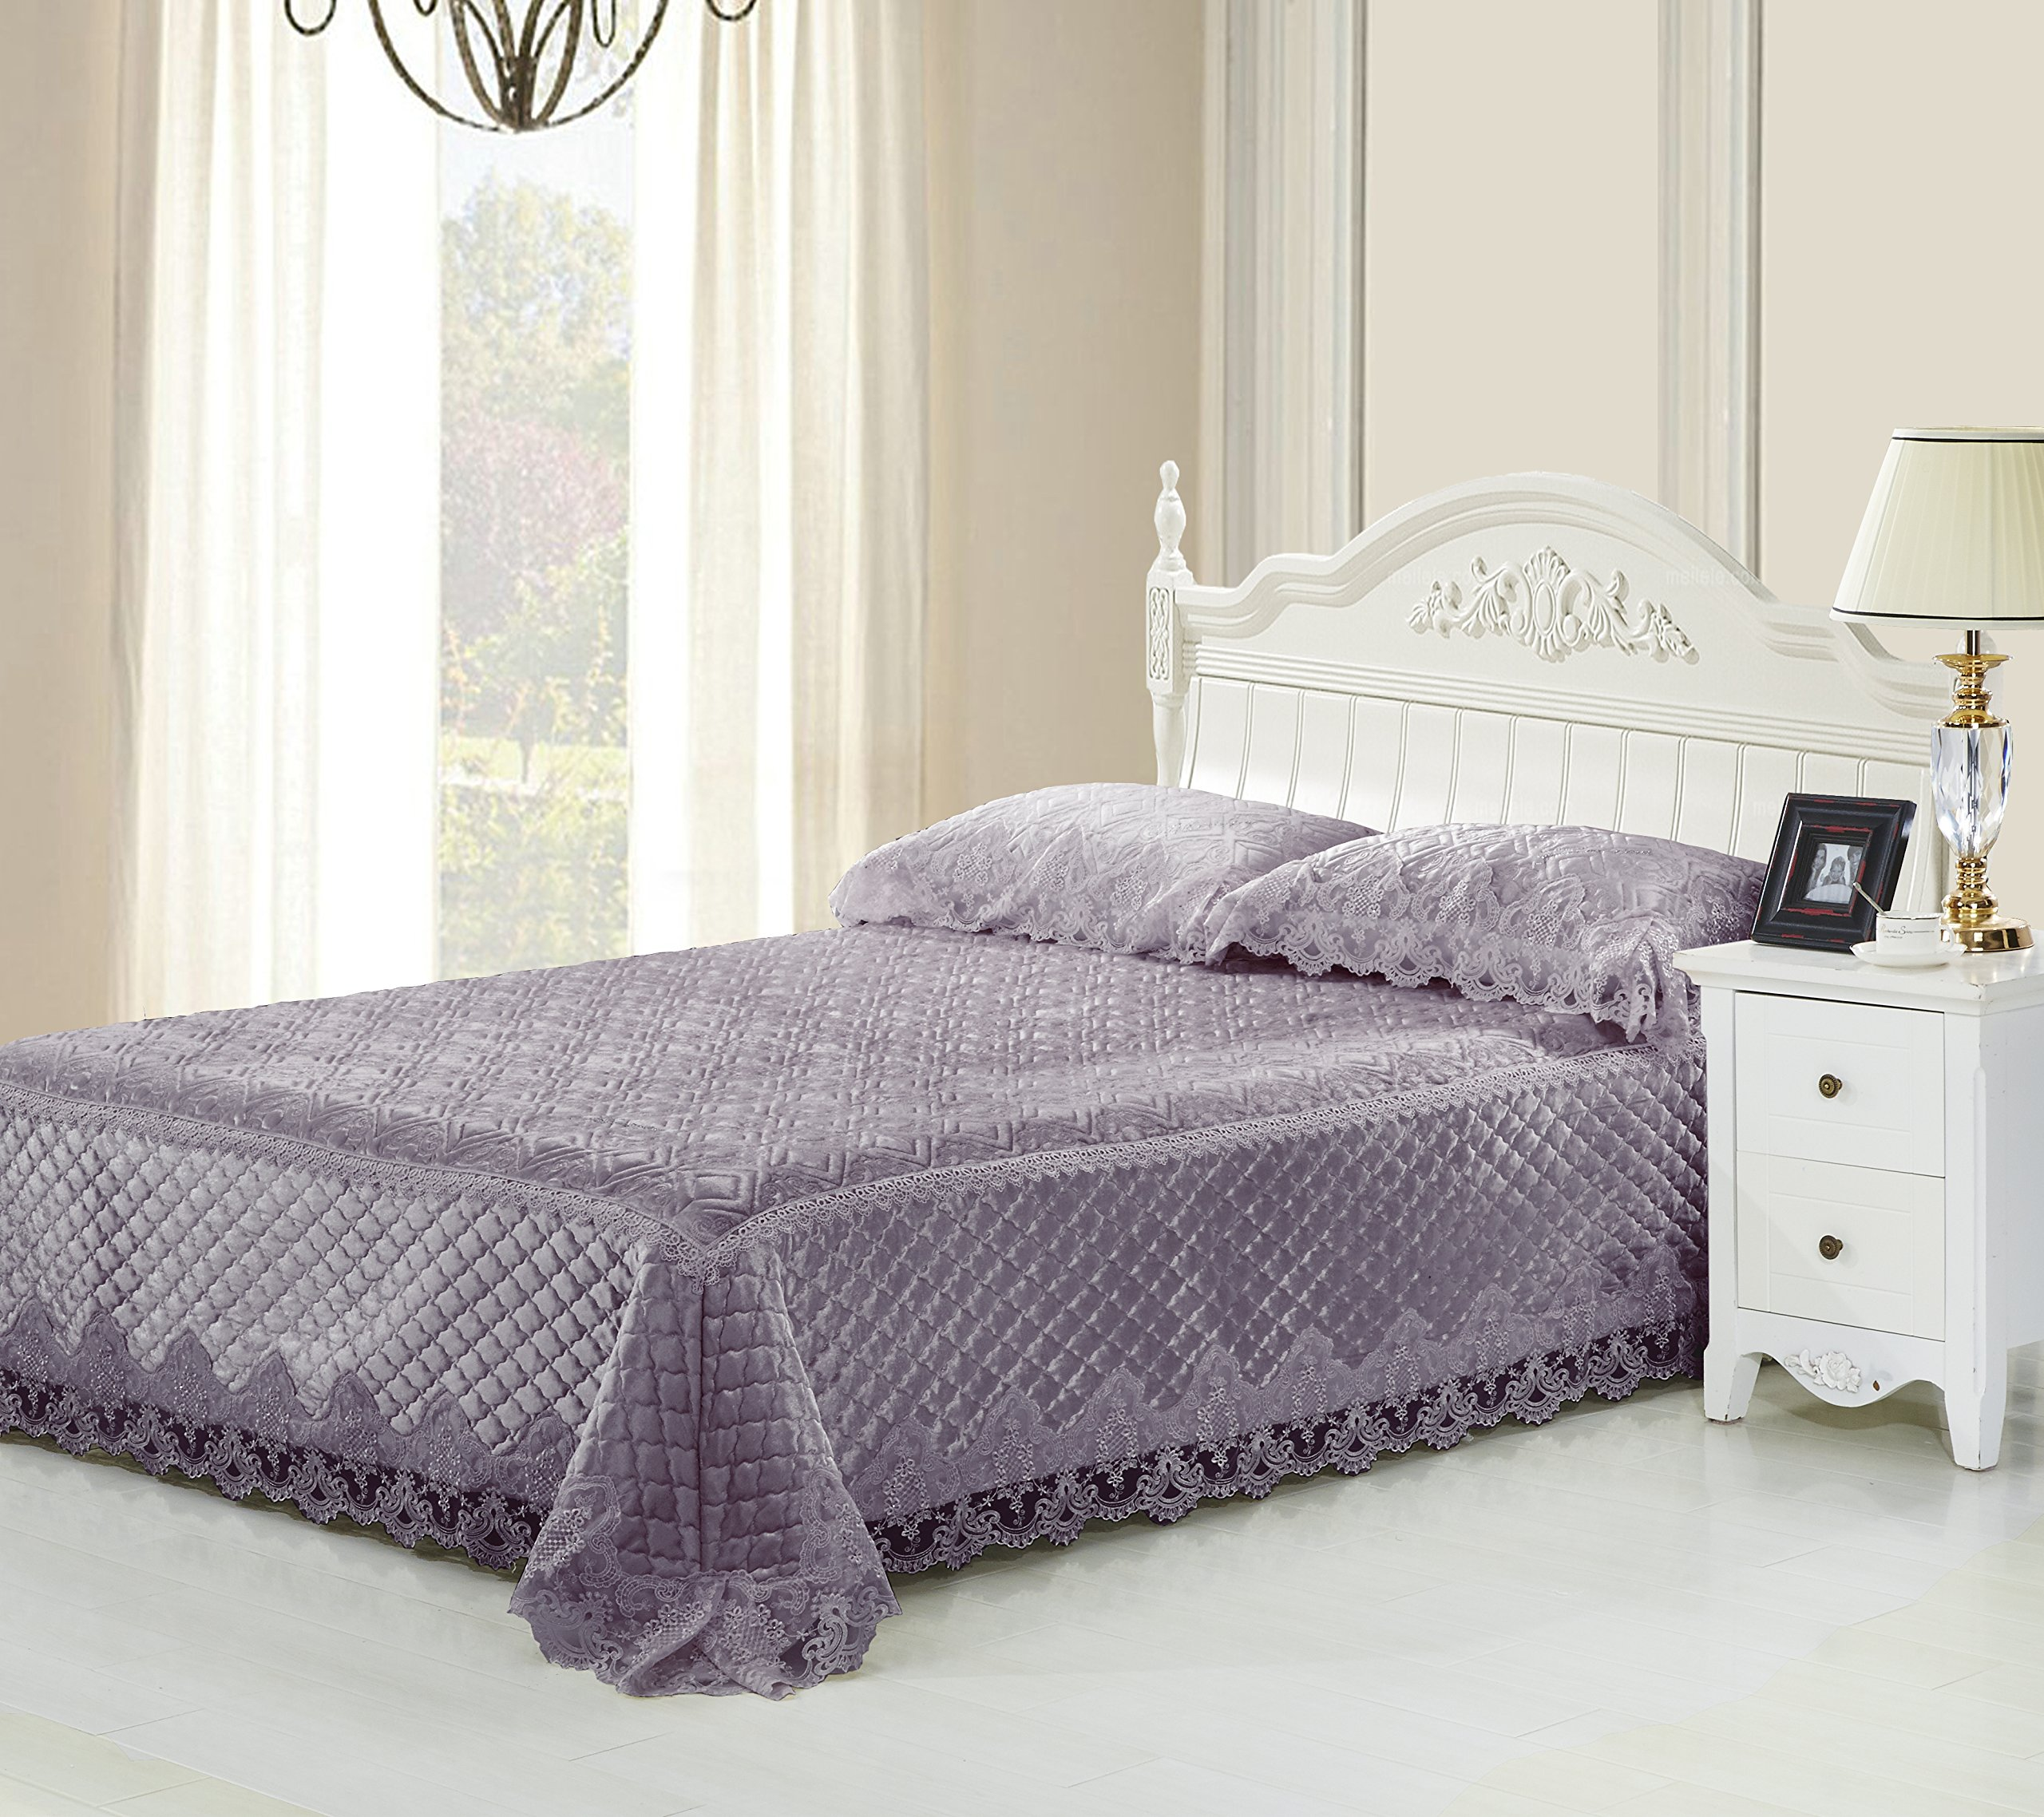 Beautiful 100% Polyester Velvet Lace Bed Cover Set with 200GSM Filling Lace 3PCS Wedding Bedding Set (purple) by BIODY